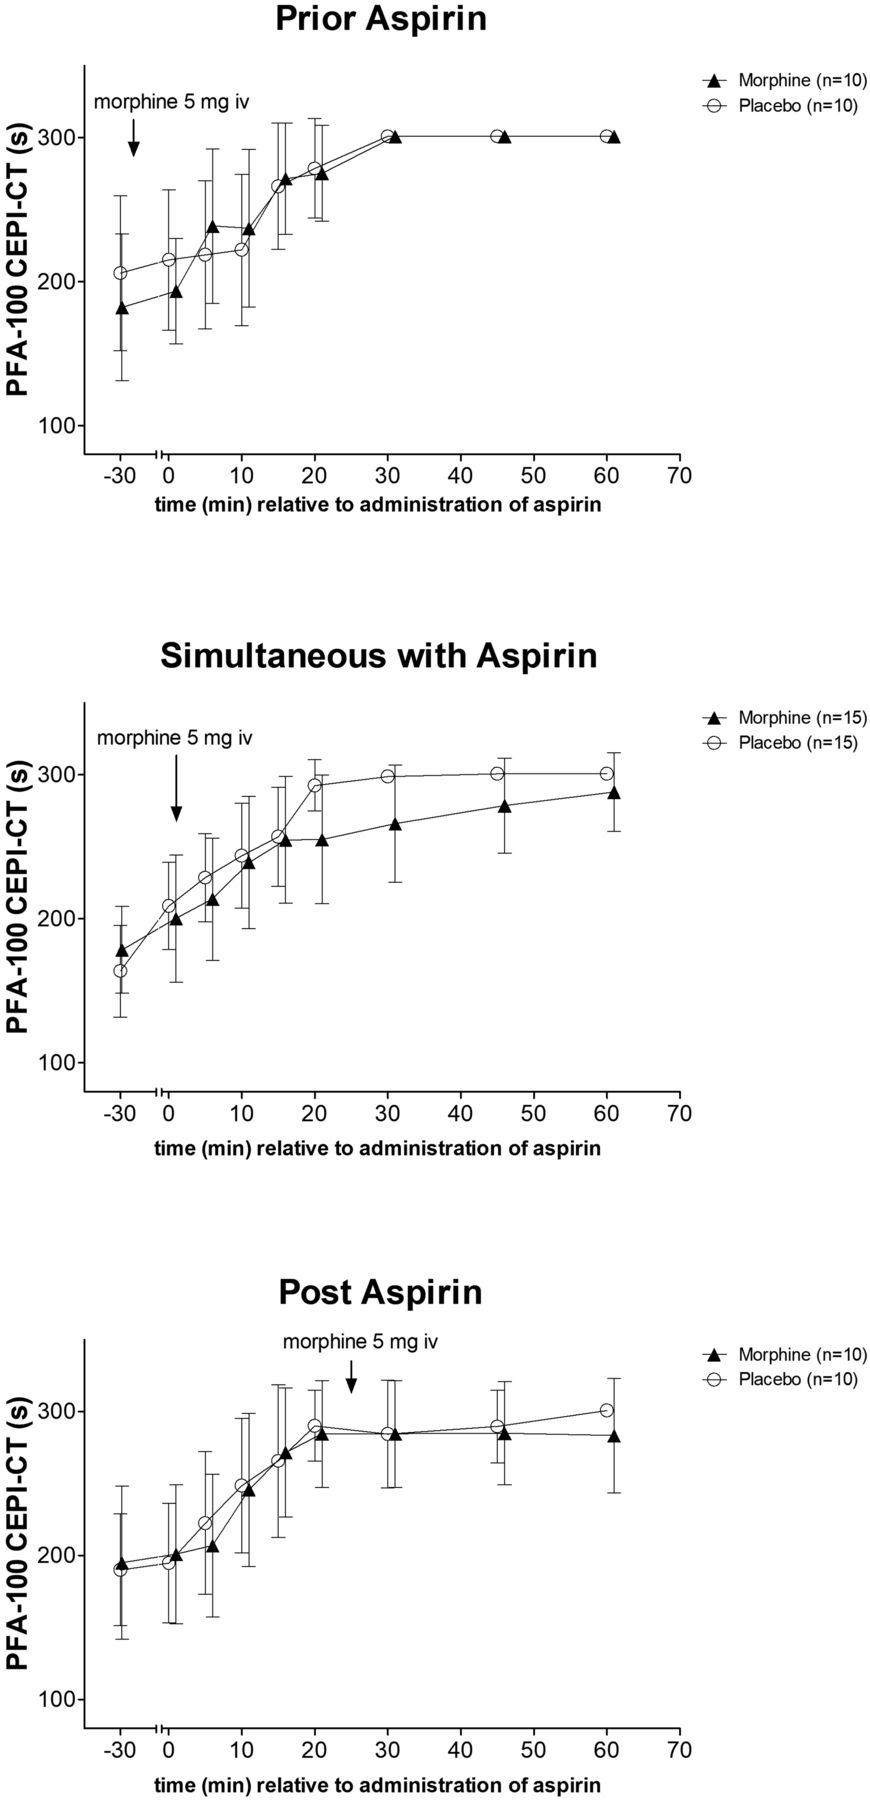 Morphine Interaction with Aspirin: a Double-Blind, Crossover